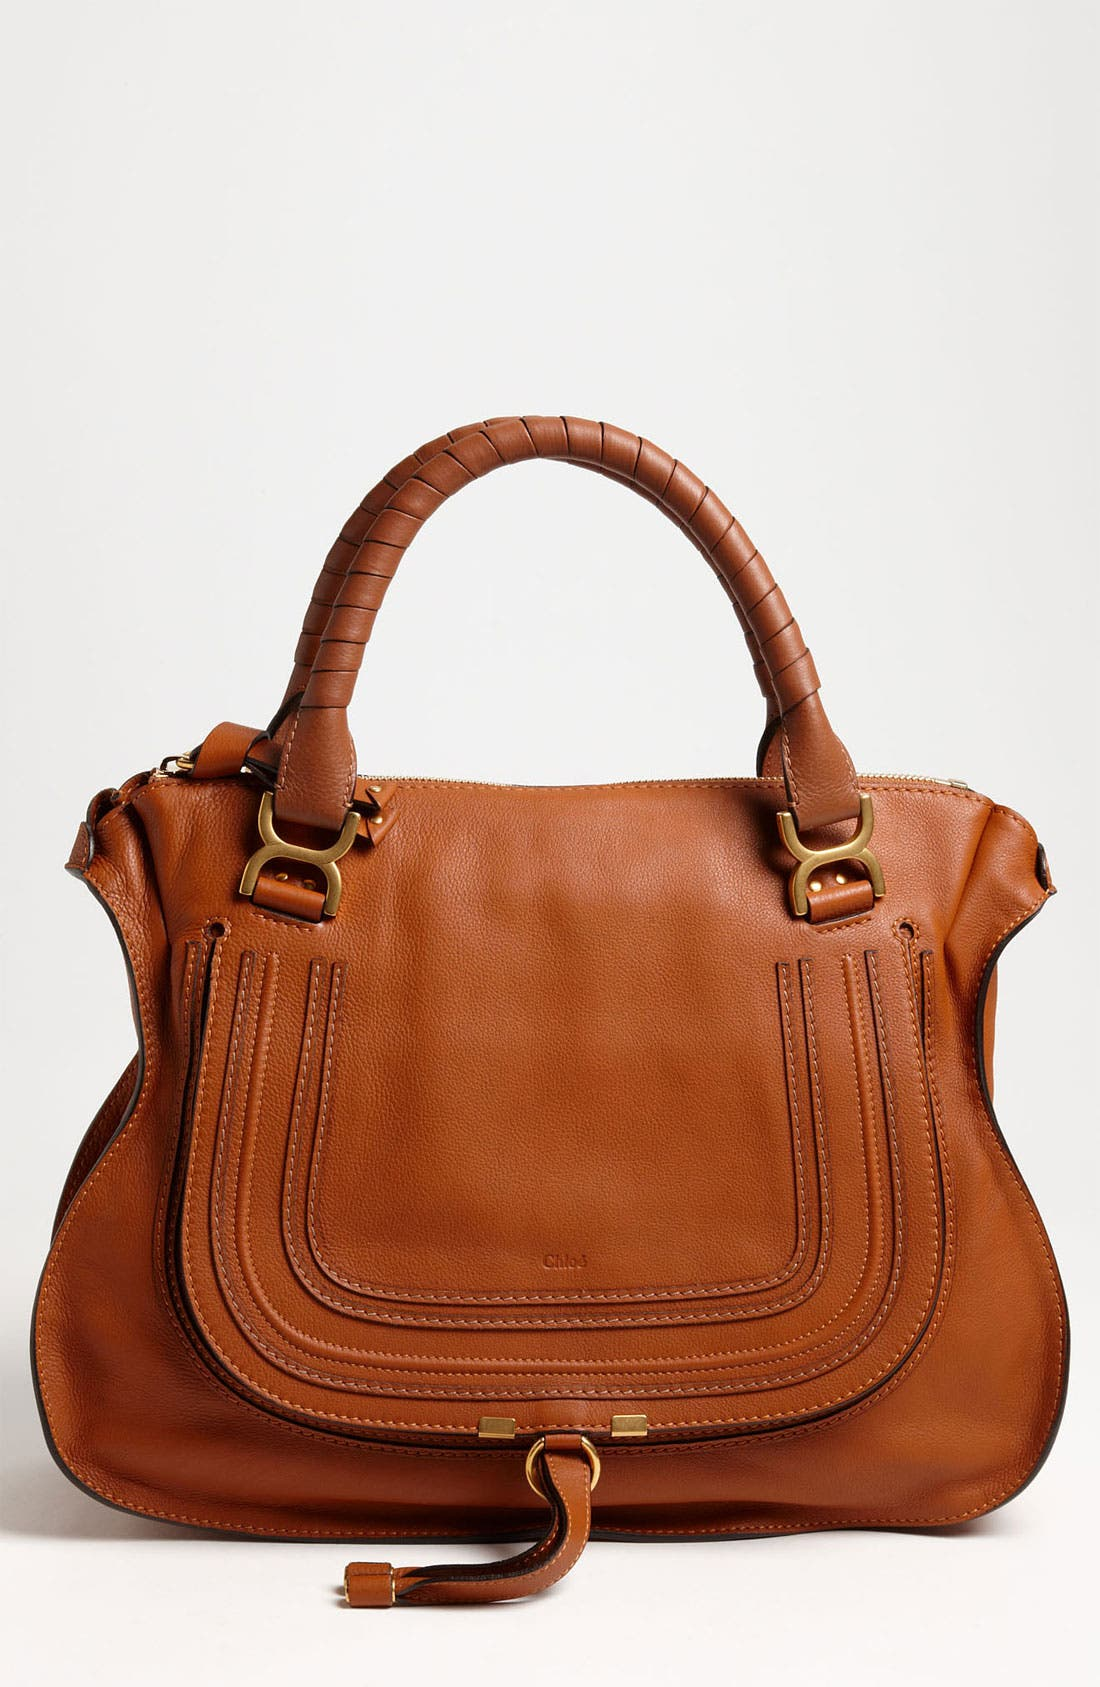 Alternate Image 1 Selected - Chloé Large Marcie Leather Satchel